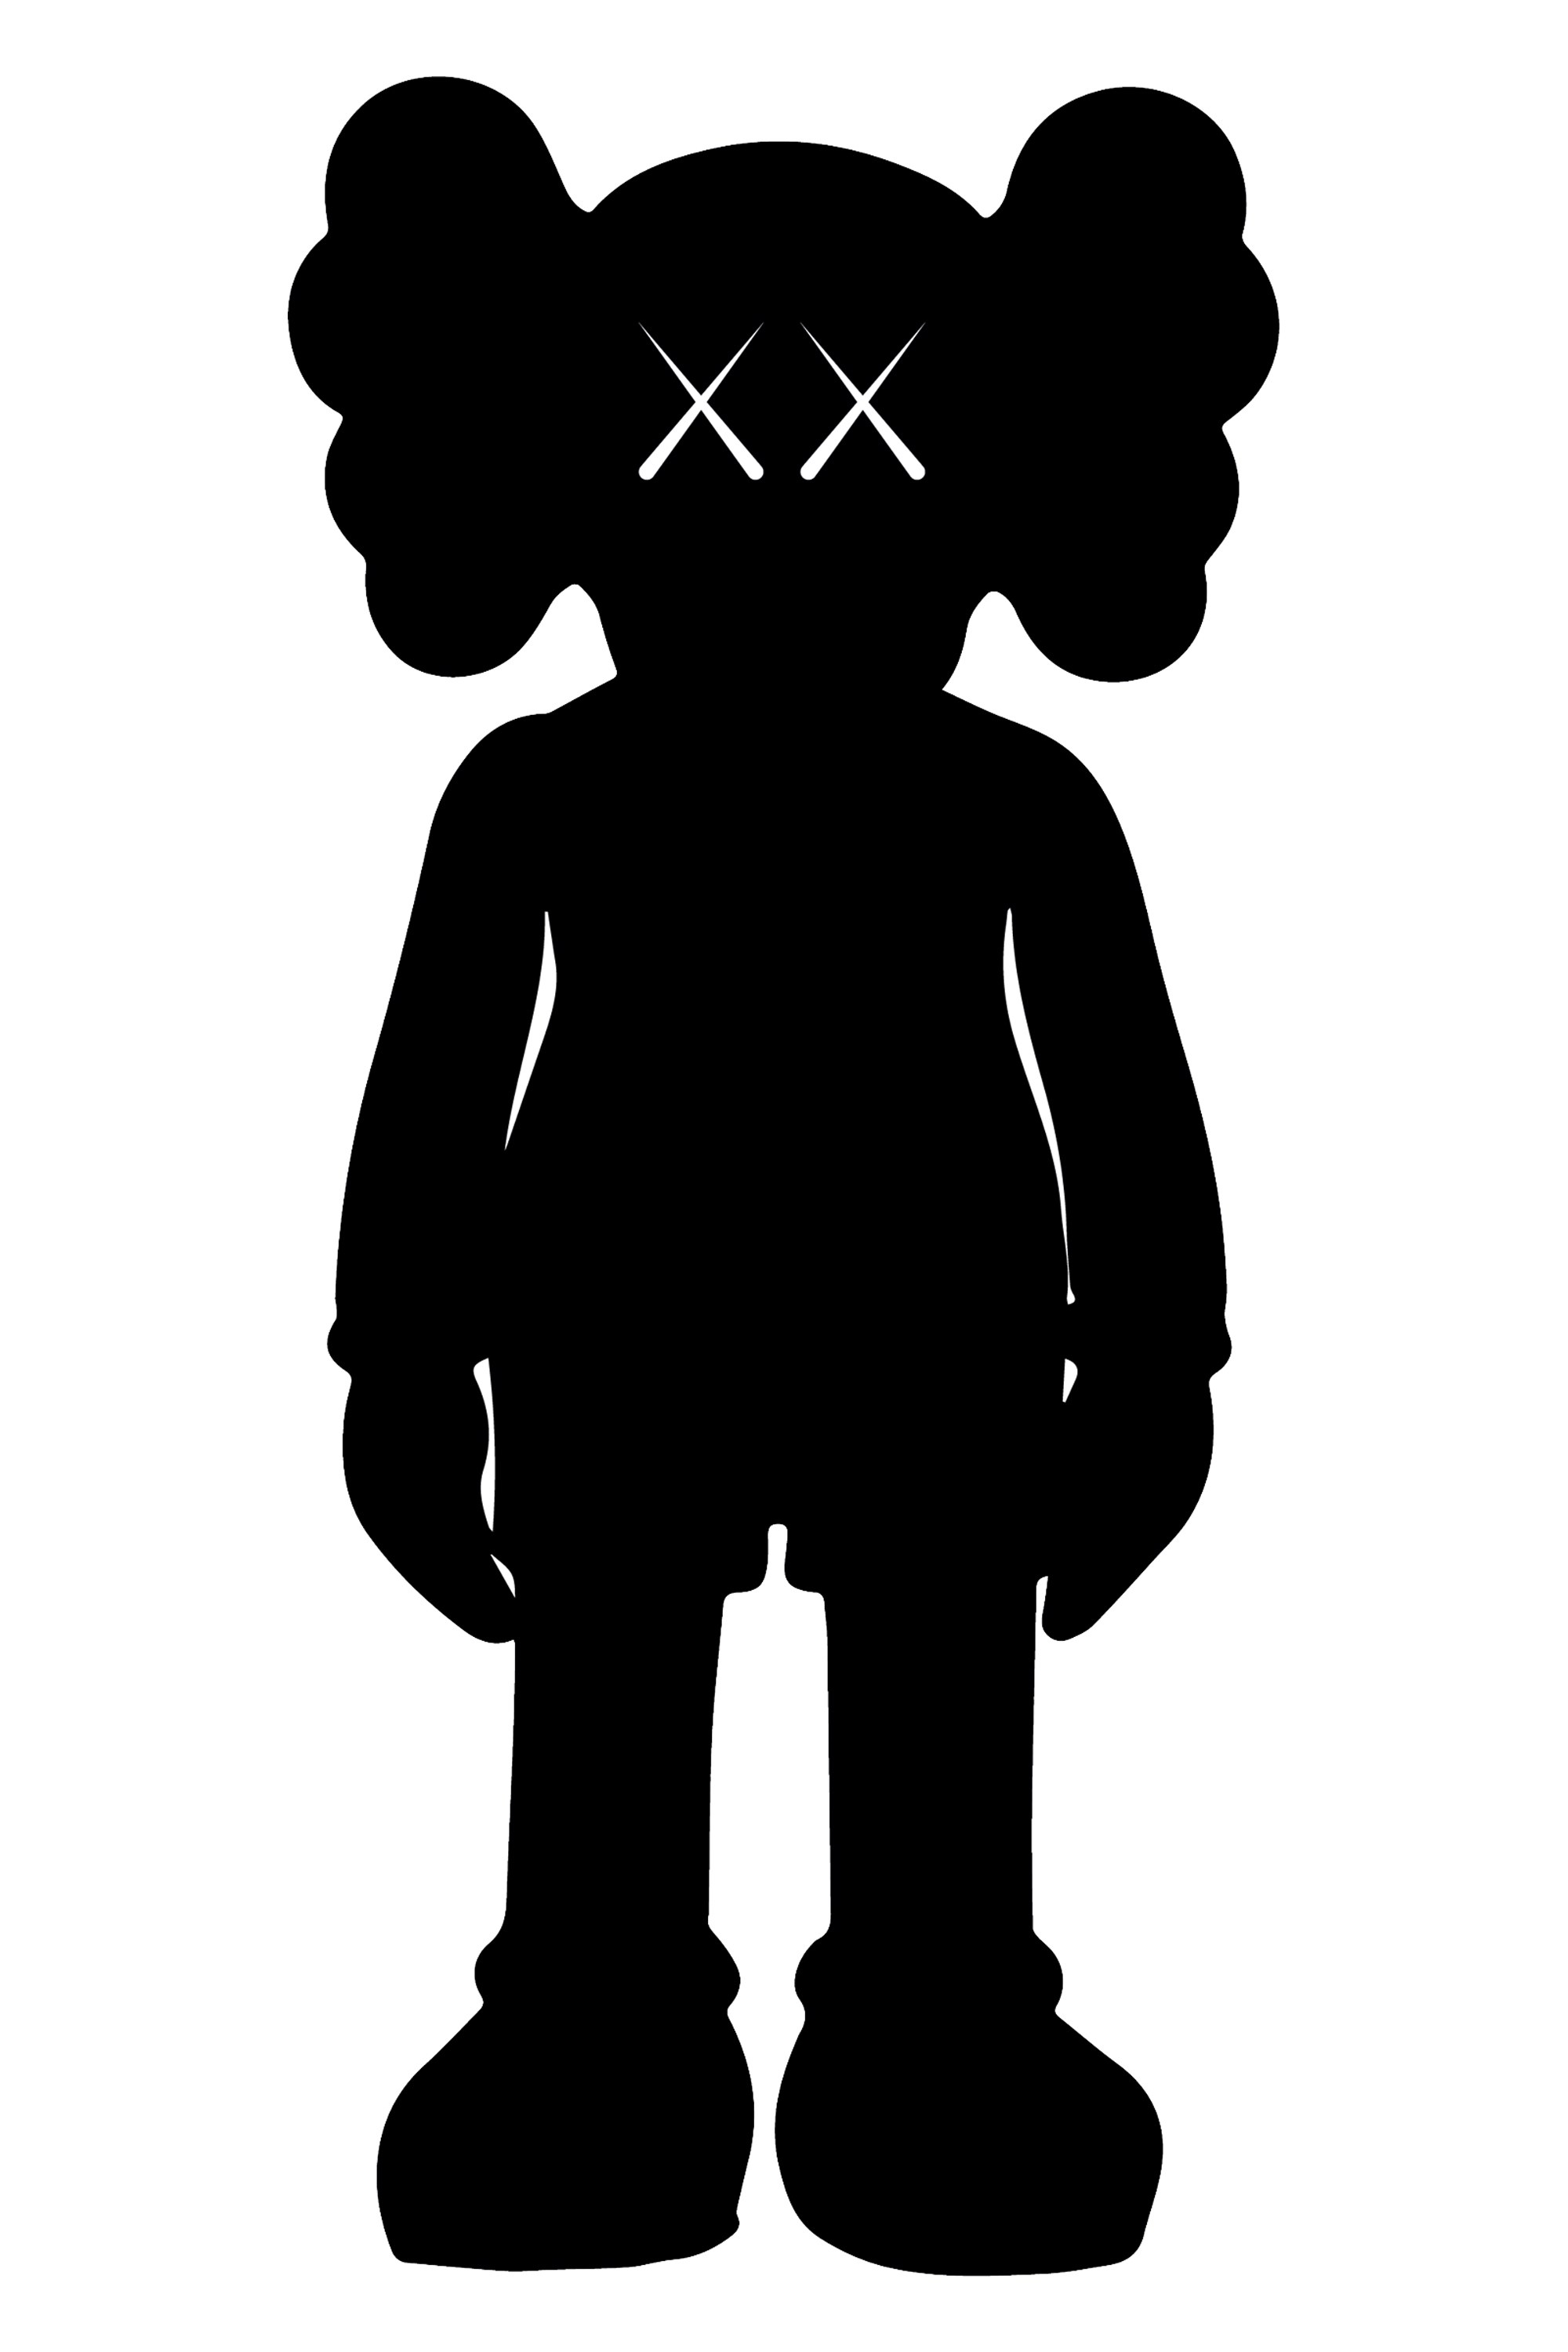 Serpentine goin up clipart black and white png royalty free download Generation XX: How Kaws Short-Circuited the Art World | GQ png royalty free download